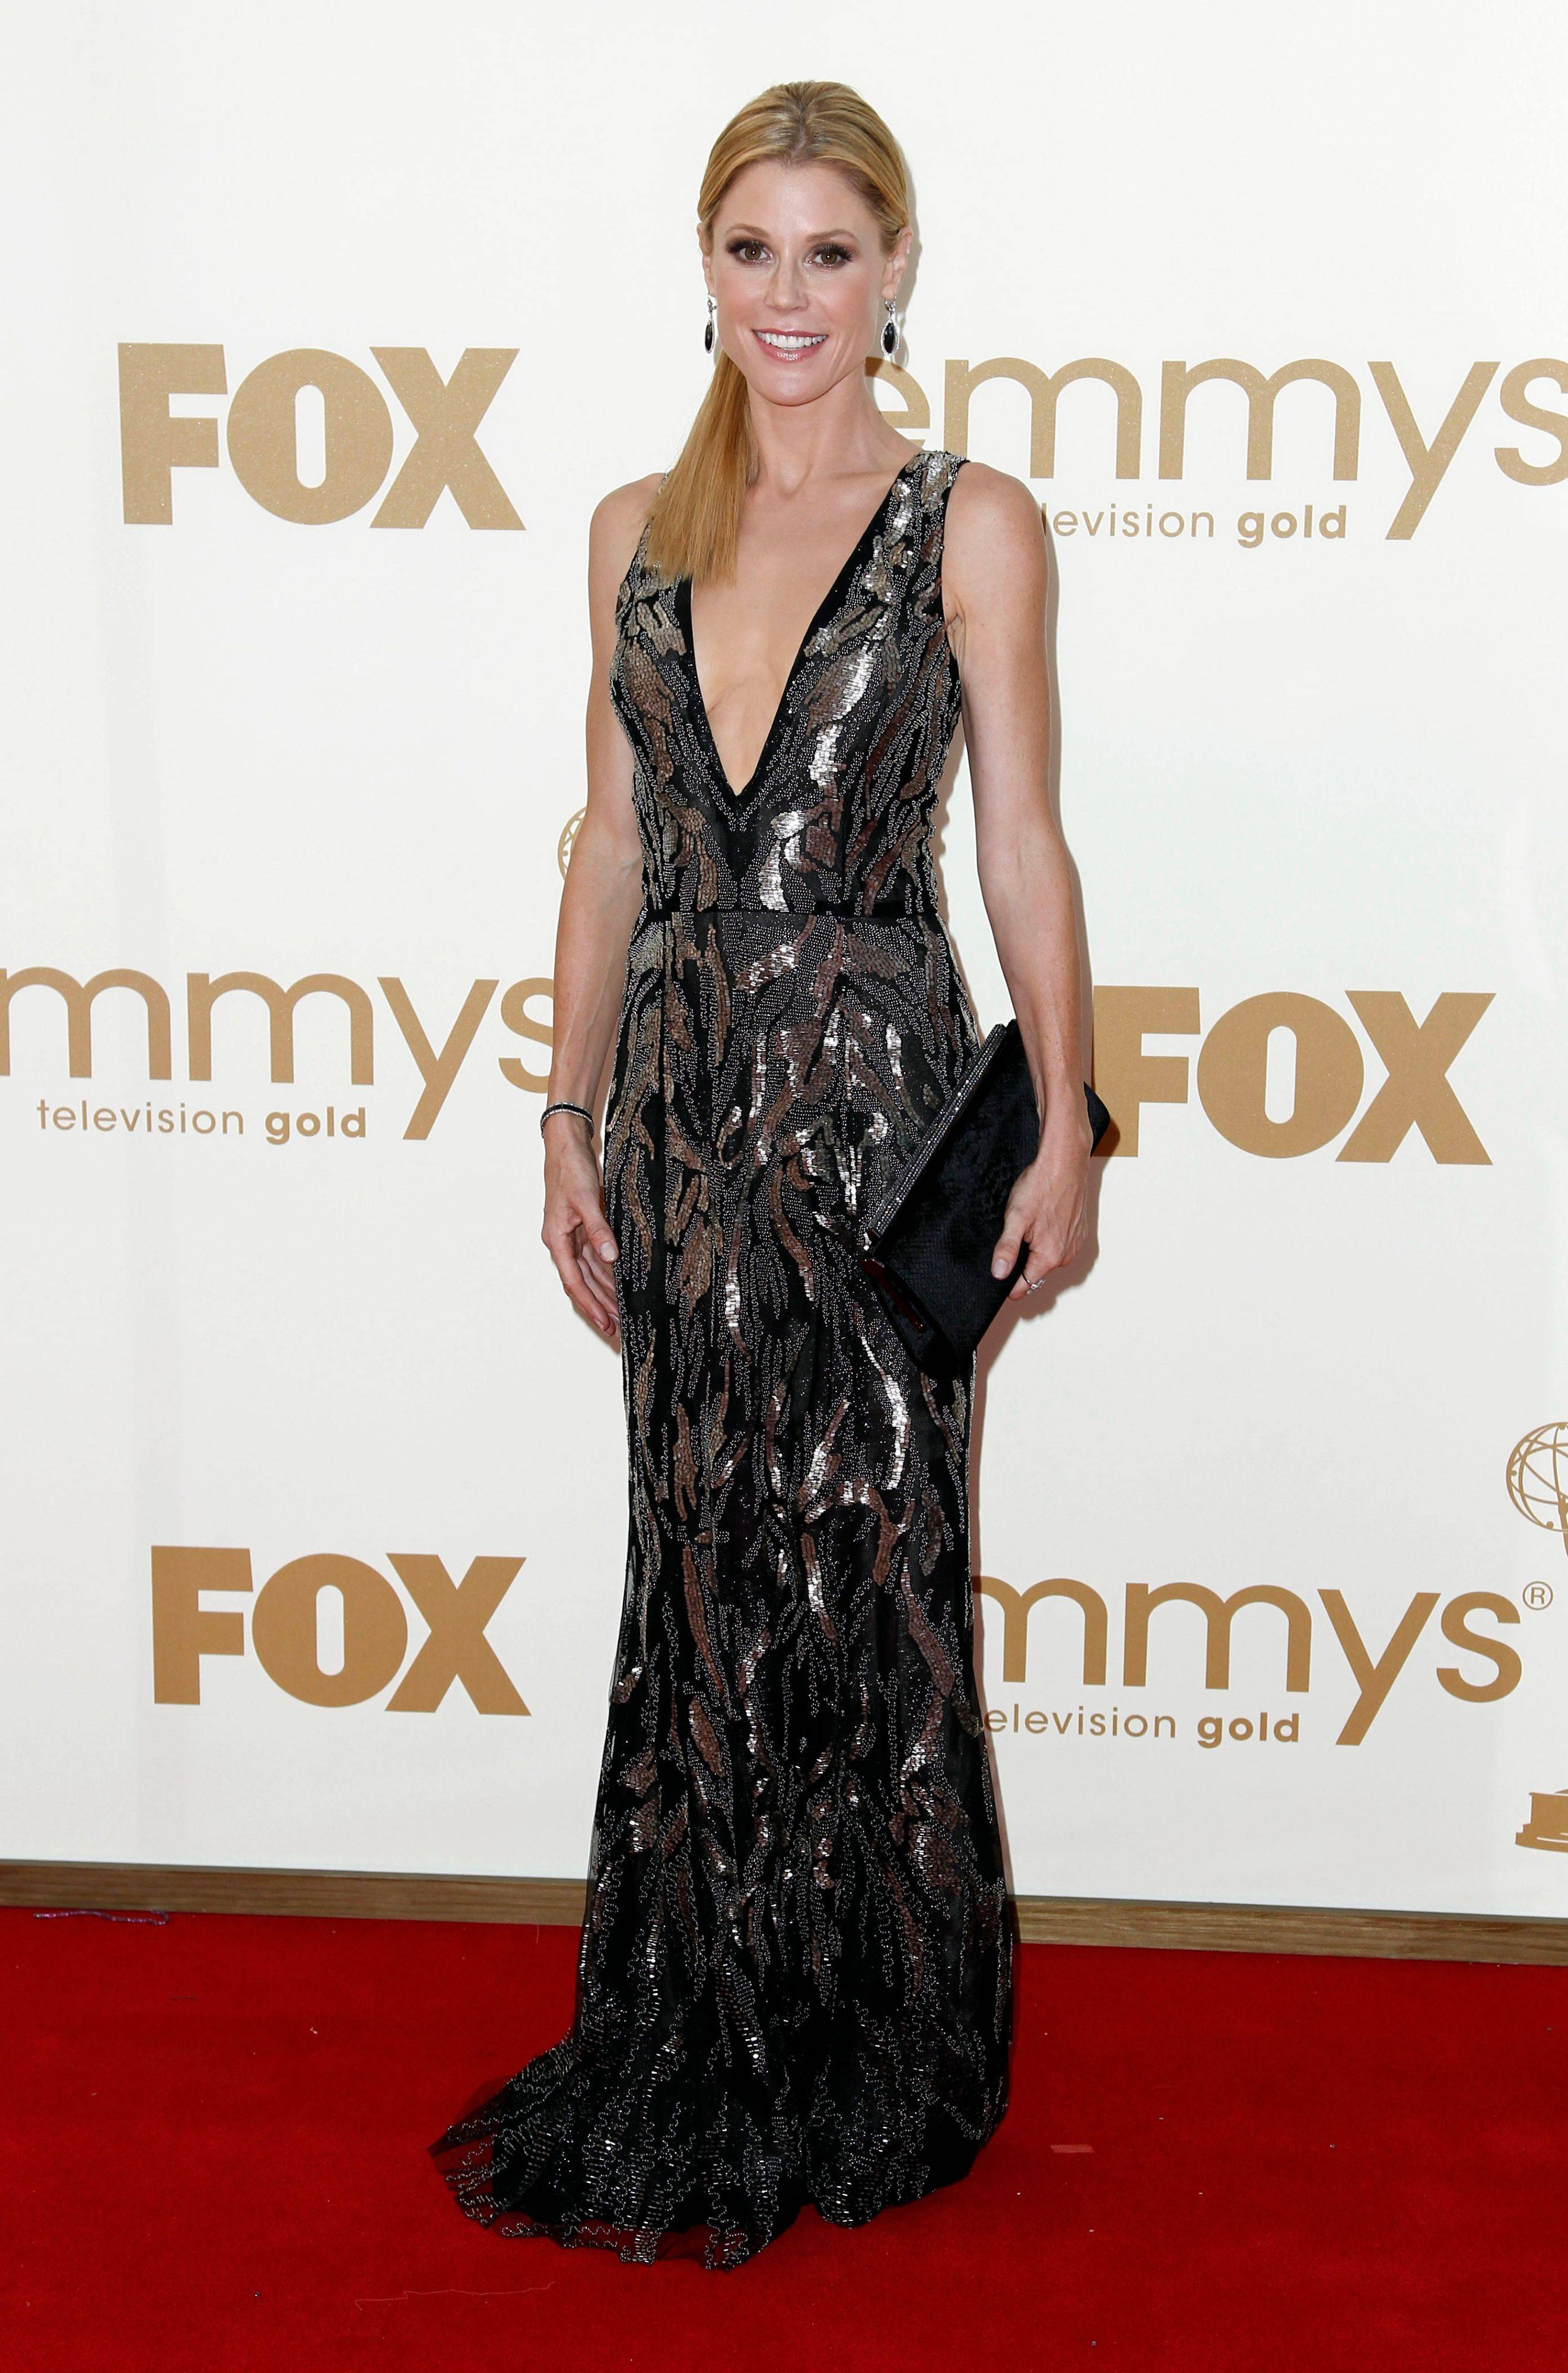 """Modern Family"" star Julie Bowen ditched the mom clothes from the show for a daring dress."